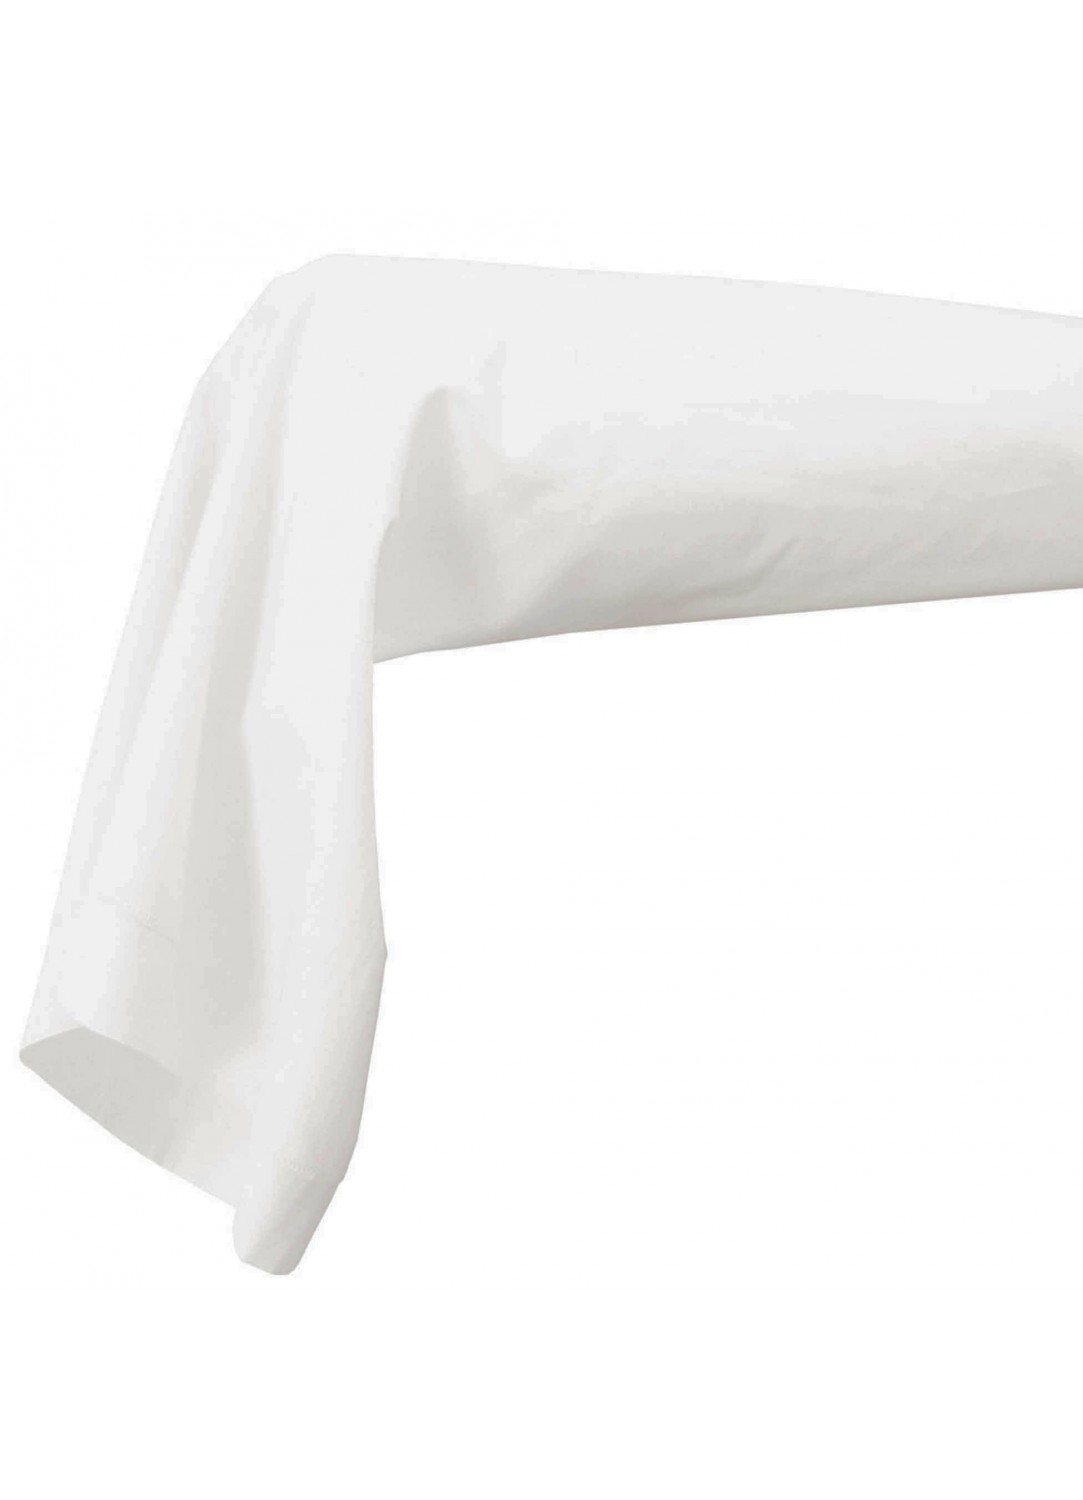 Housse de traversin percale 86 x 140 cm (Blanc)